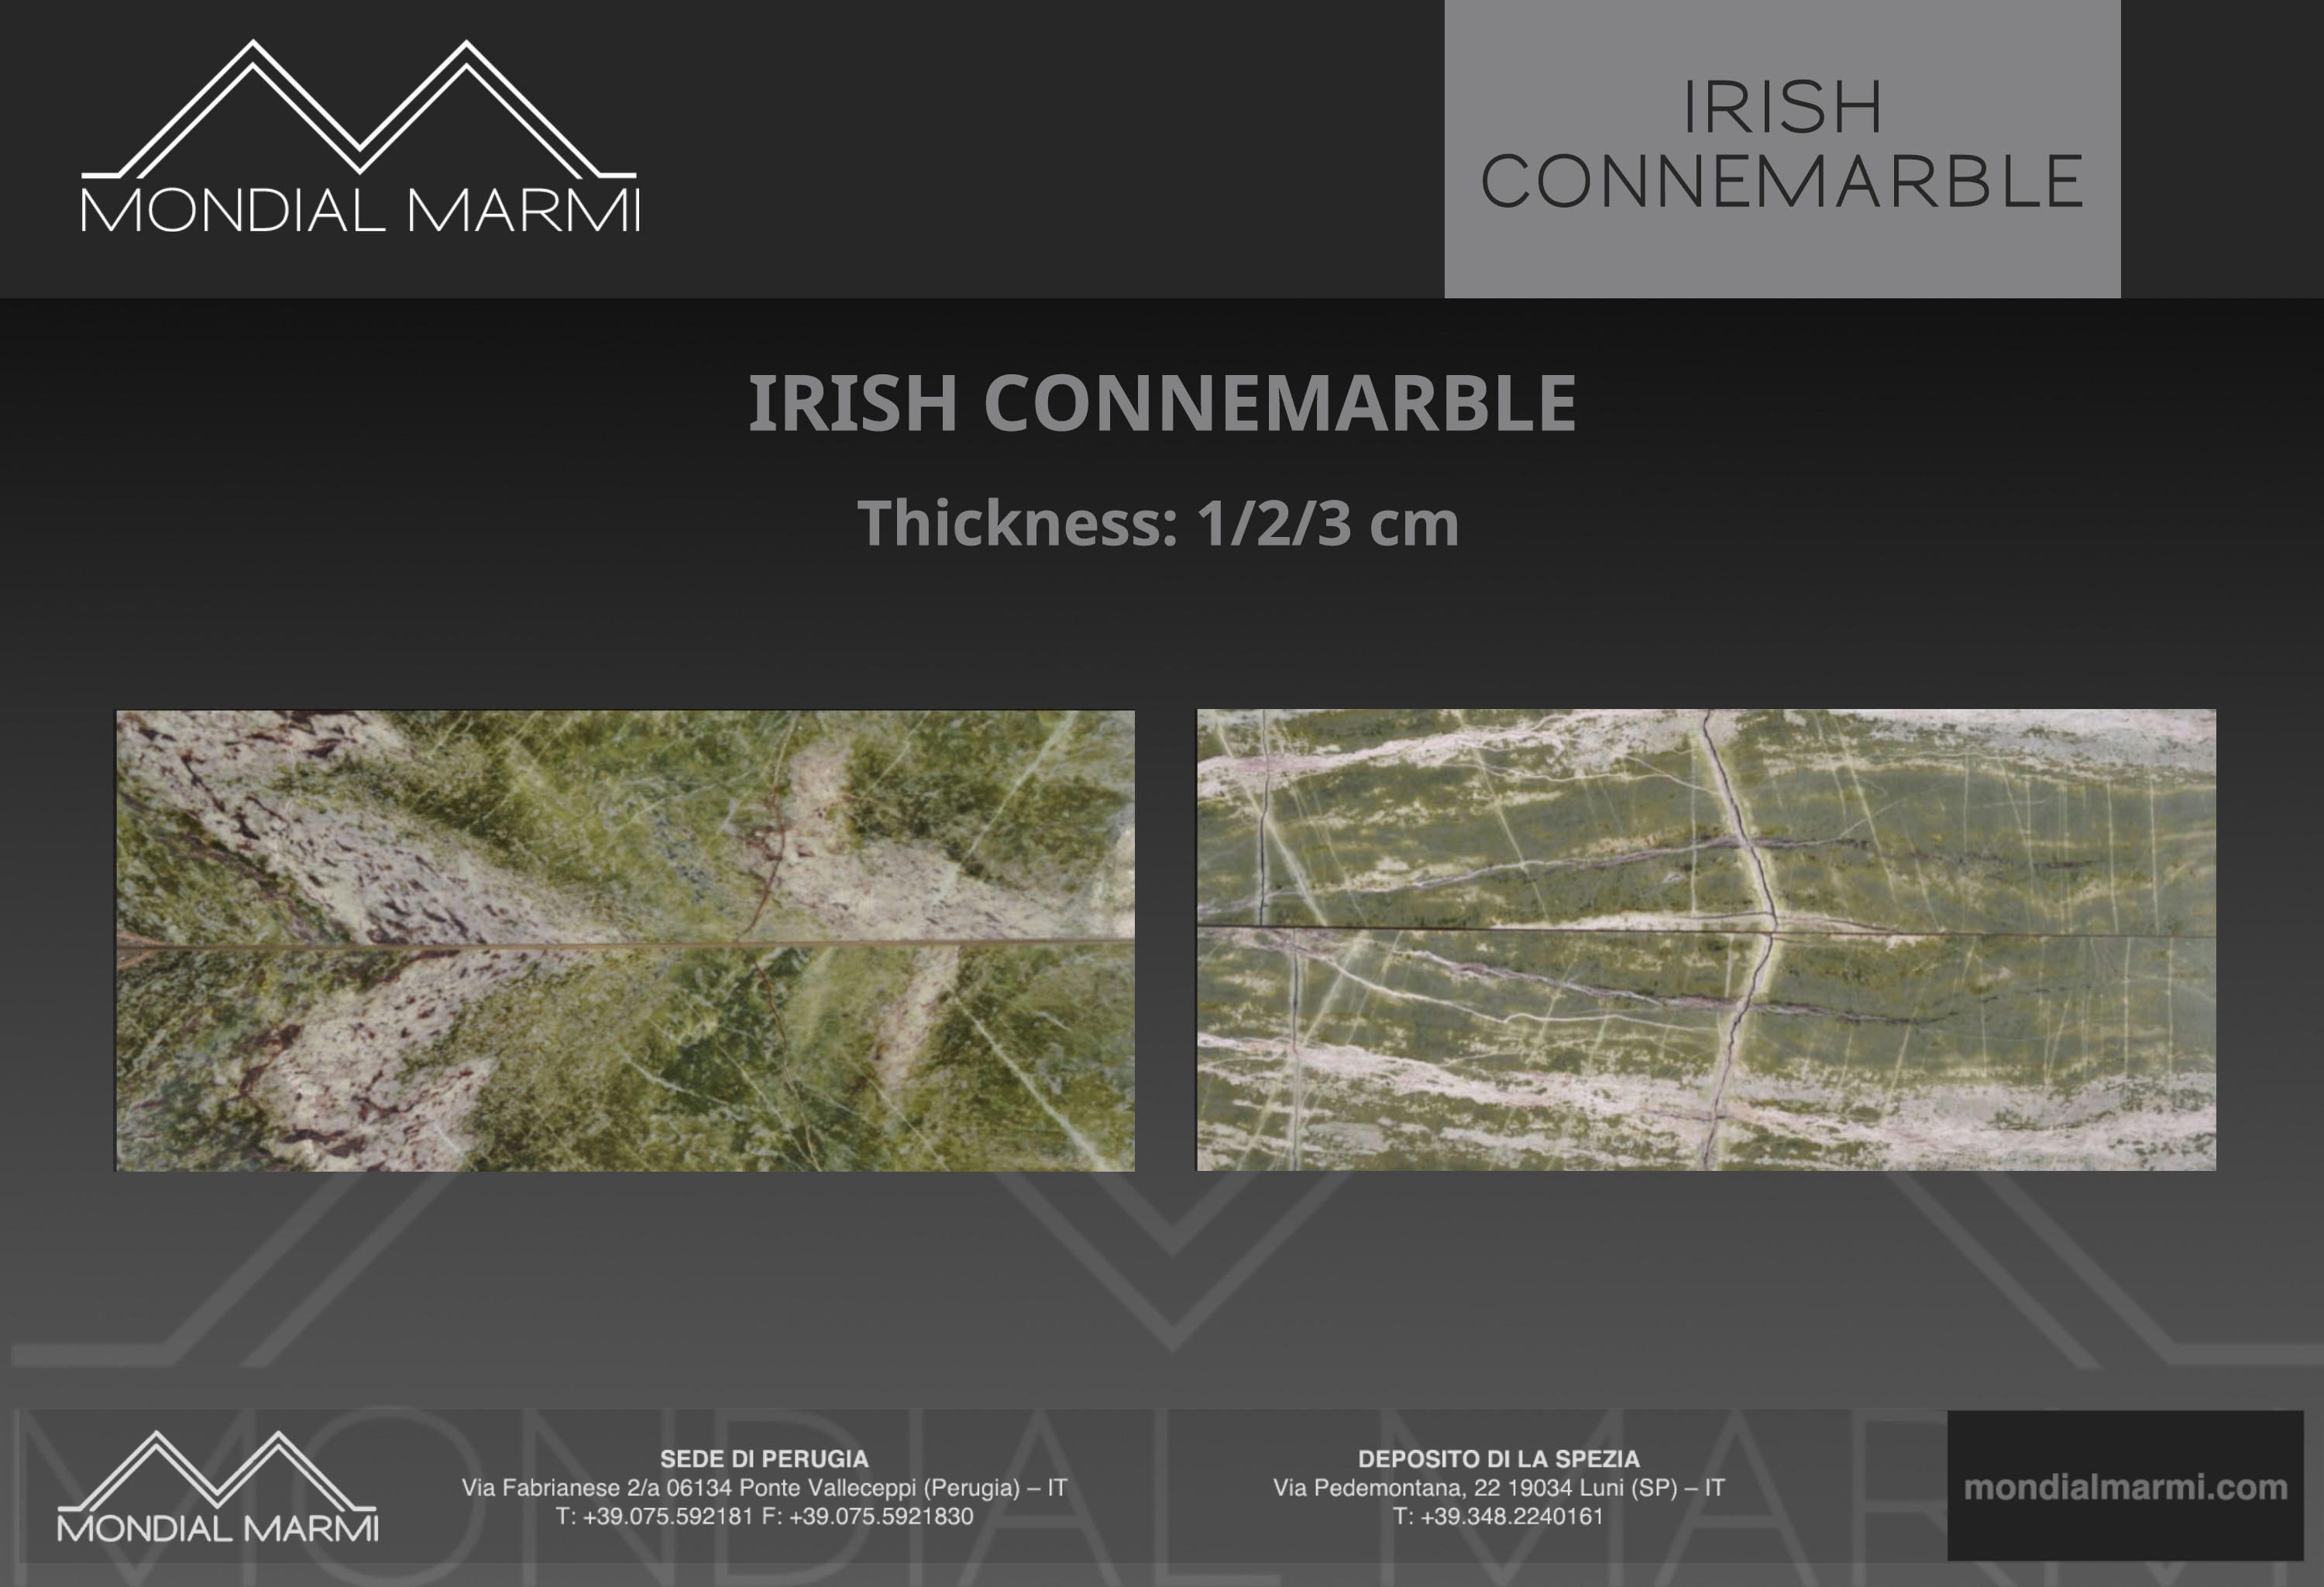 Irish Connemarble